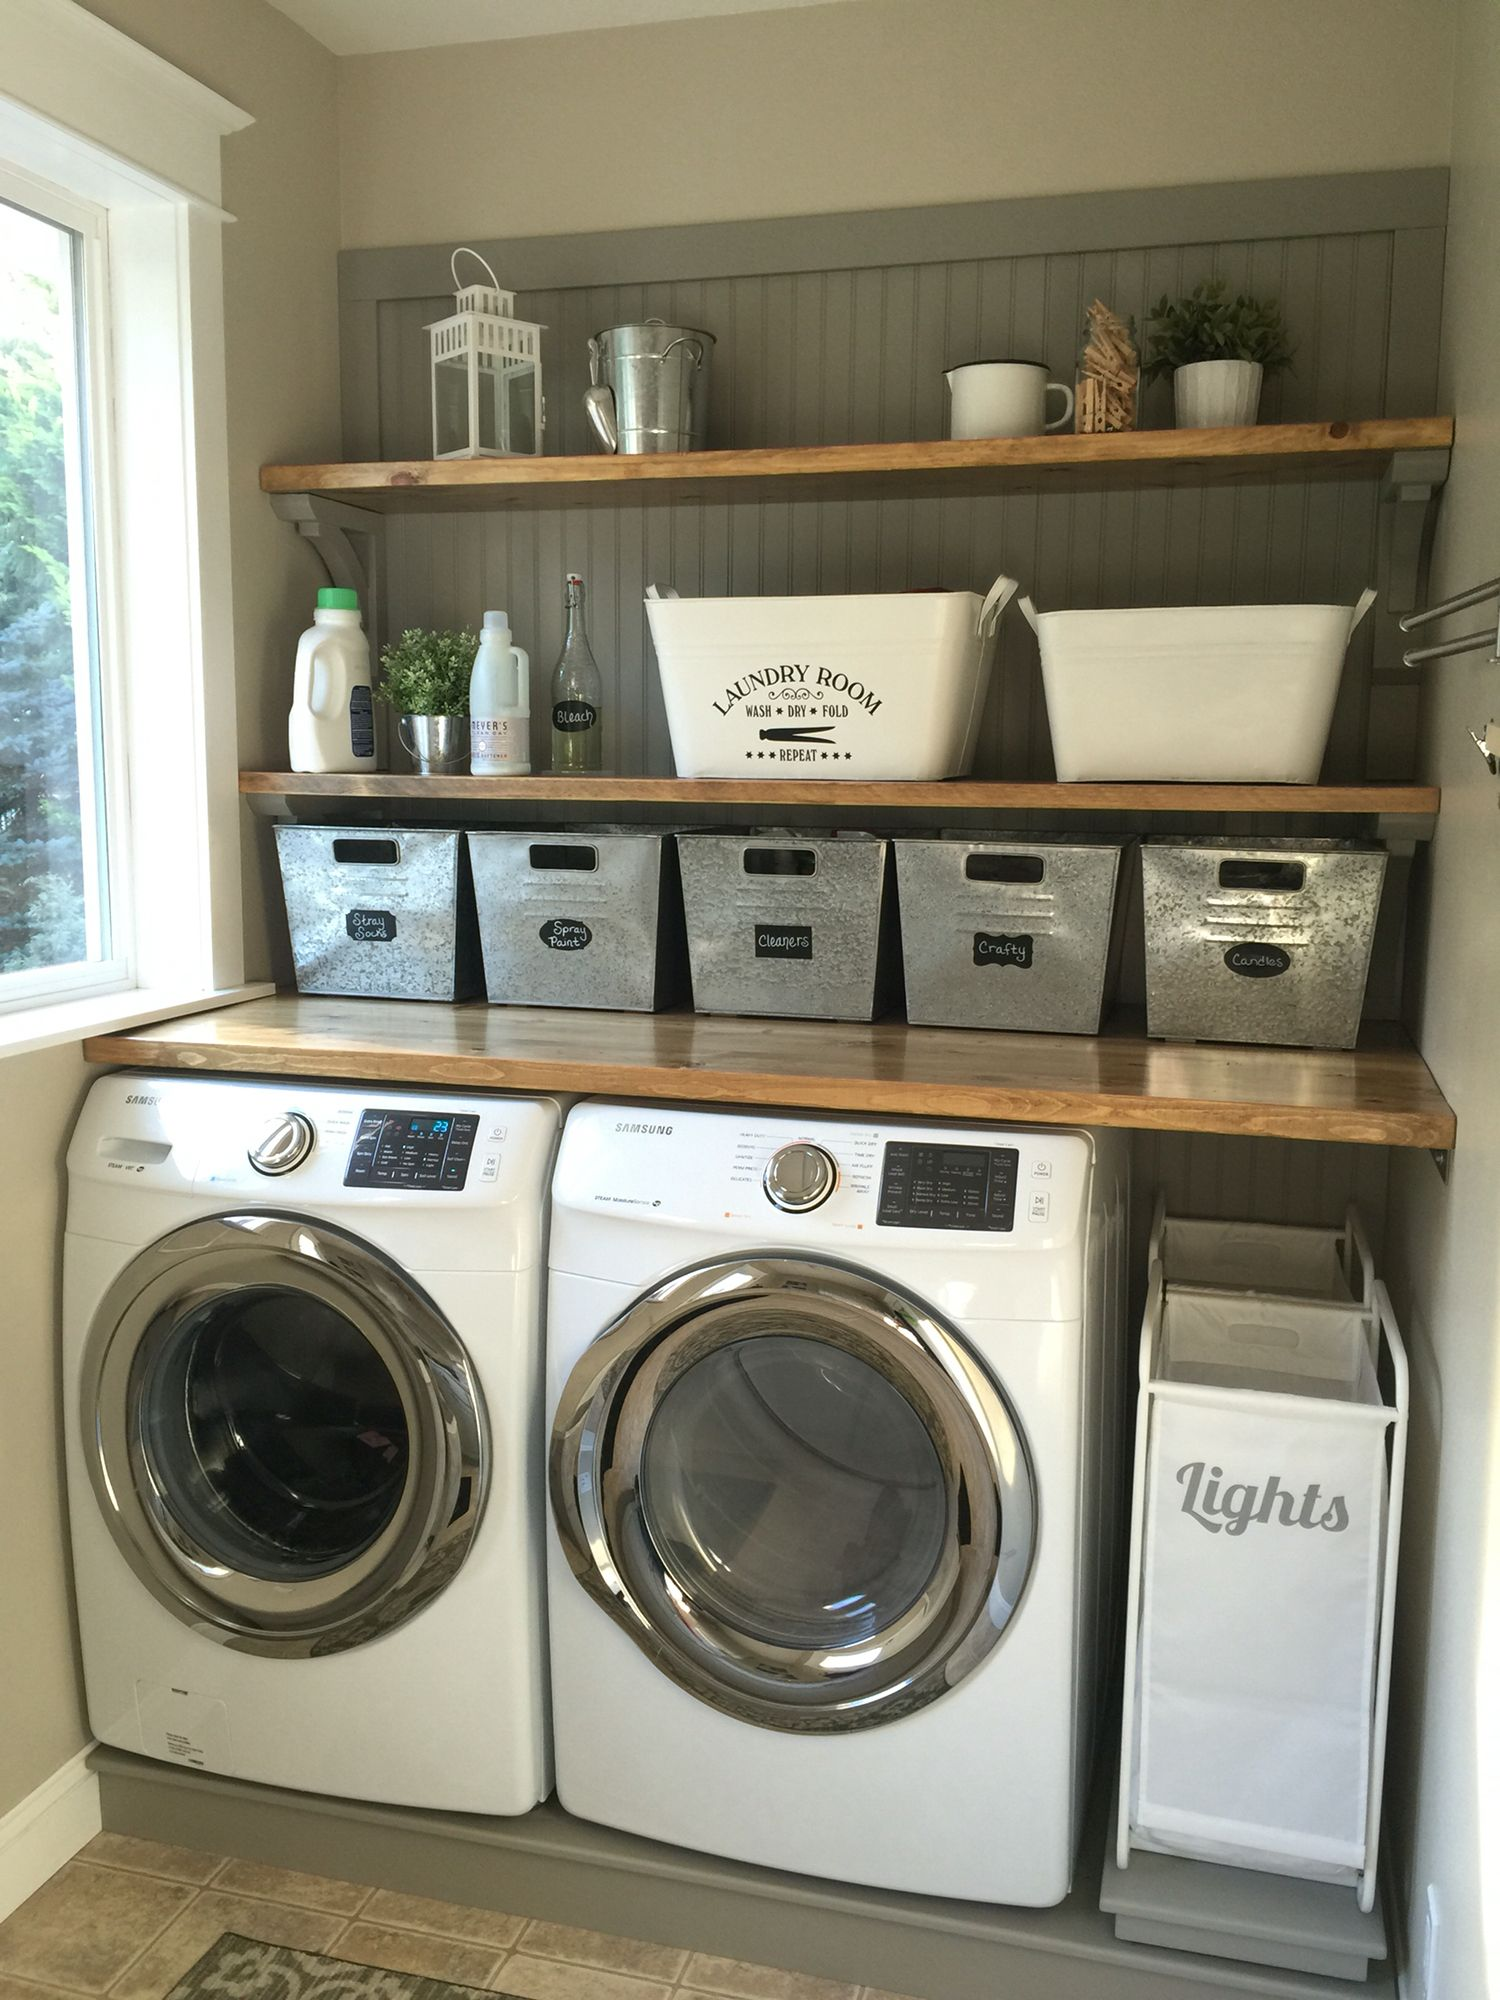 Laundry room makeover wood counters walmart tin totes Laundry room storage